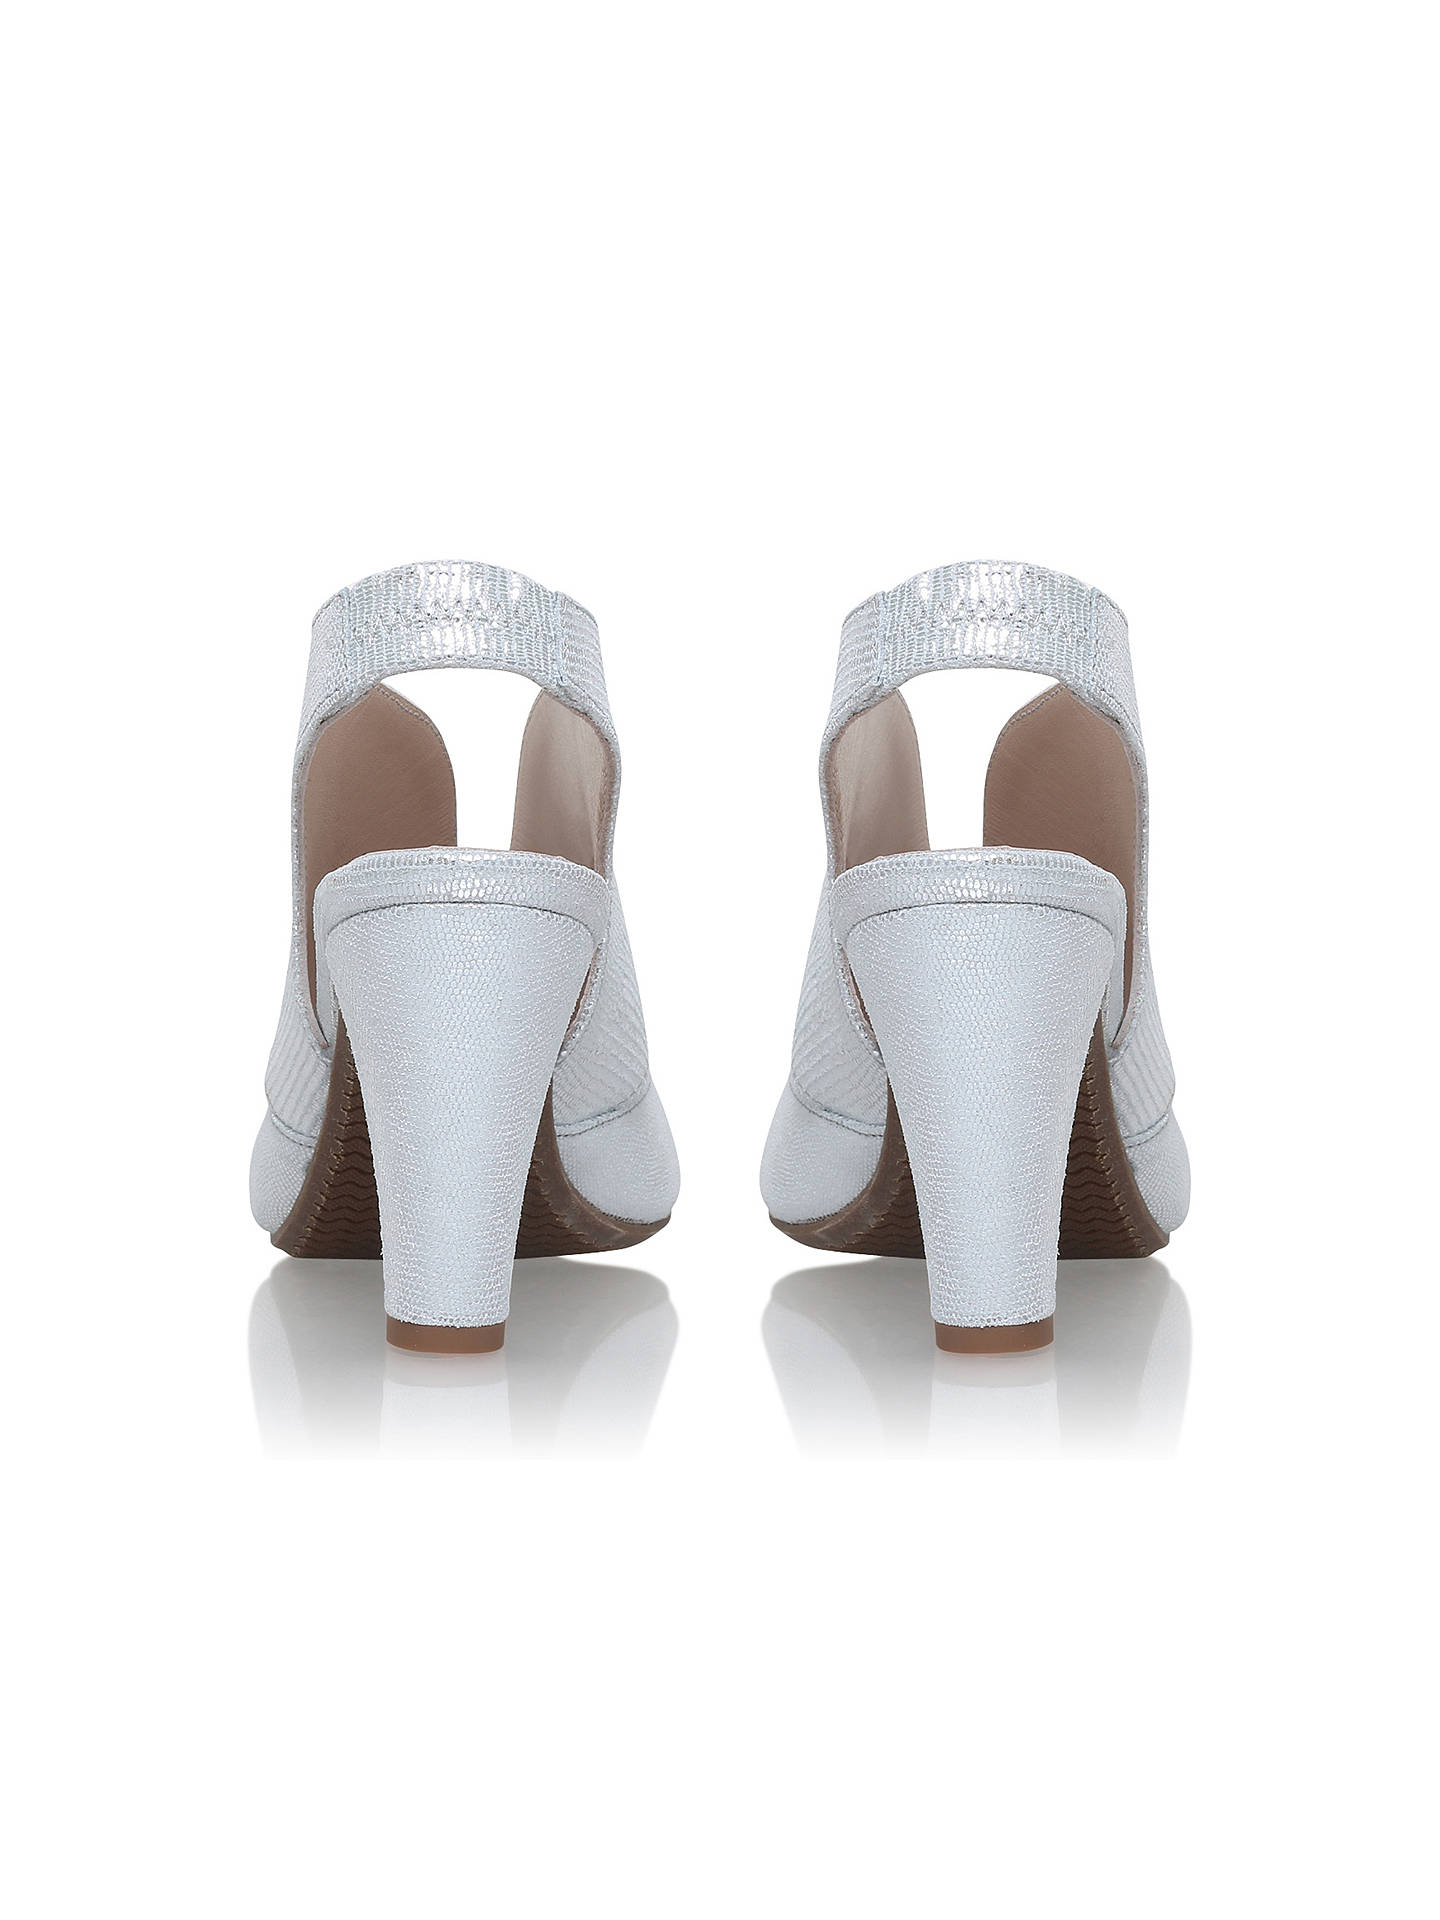 86b0dc1438a11 ... Buy Carvela Comfort Arabella Cone Heel Open Toe Court Shoes, Silver  Leather, 3 Online ...